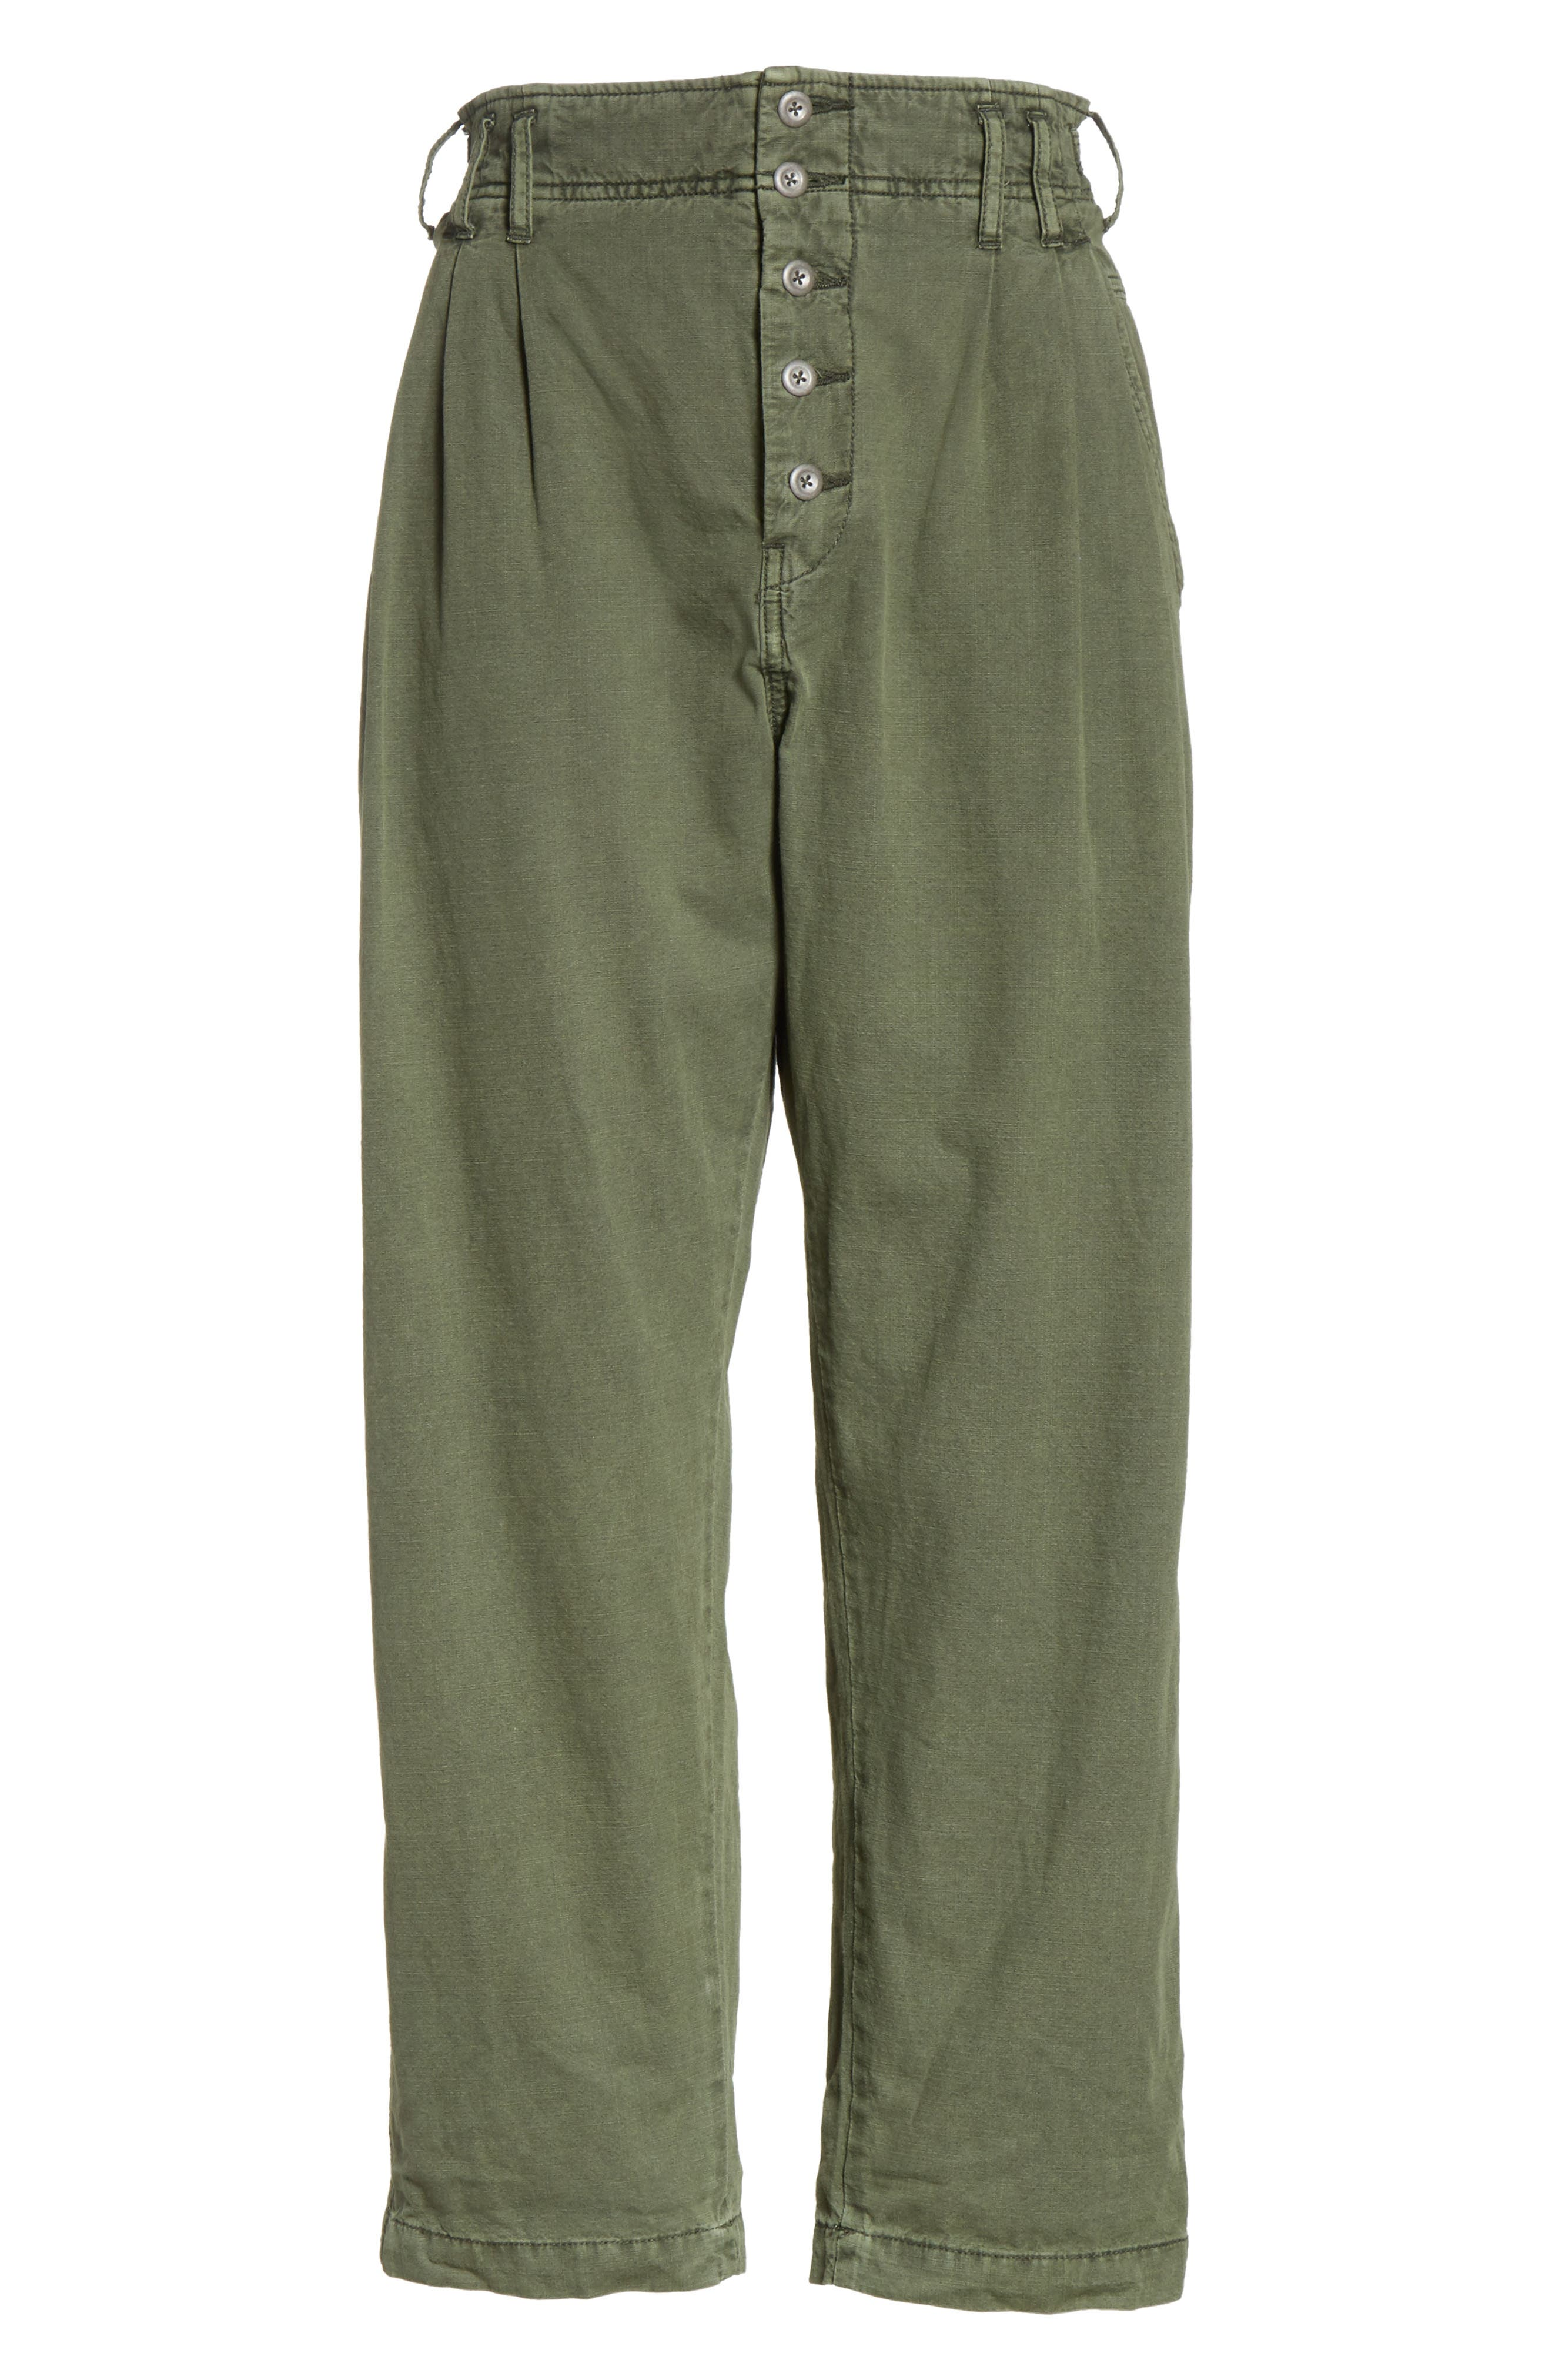 Compass Star Trousers,                             Alternate thumbnail 6, color,                             Slate